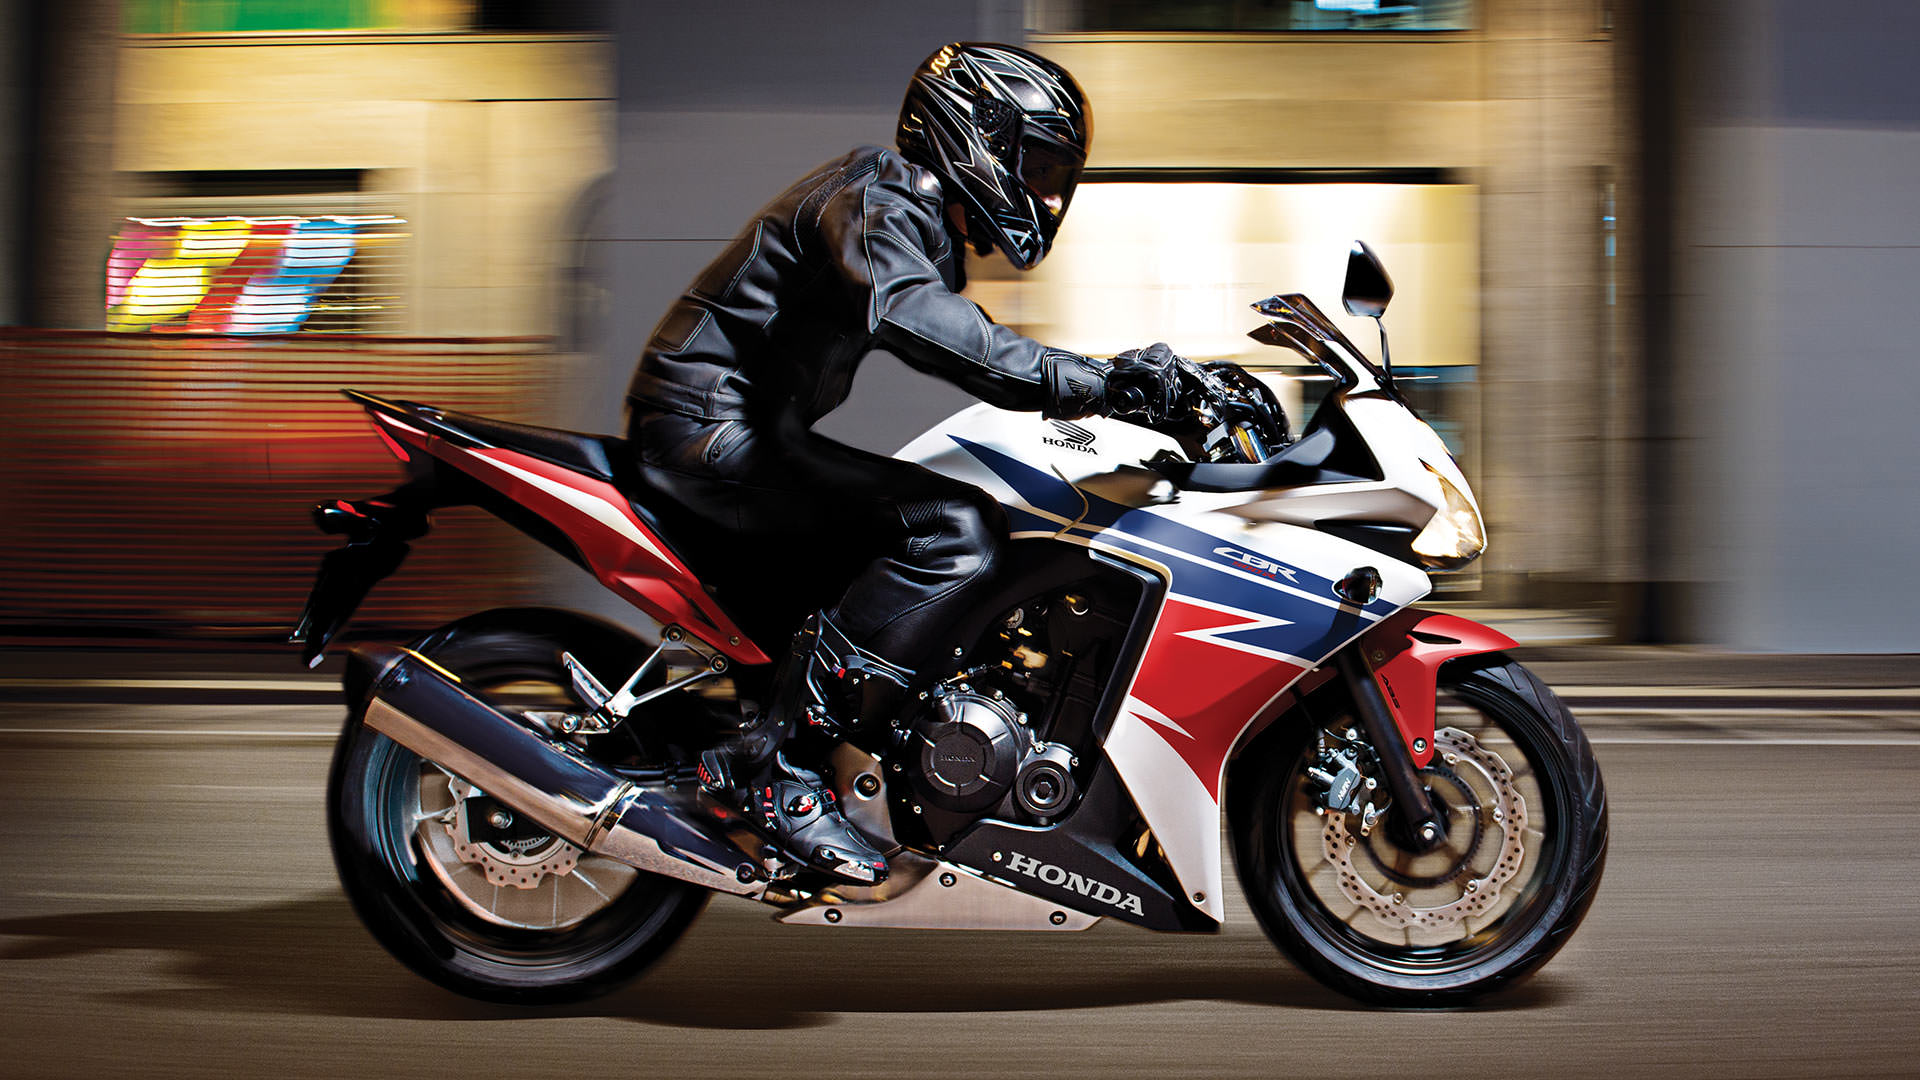 2014 Honda CBR500R Review / Specs / Pictures & Videos